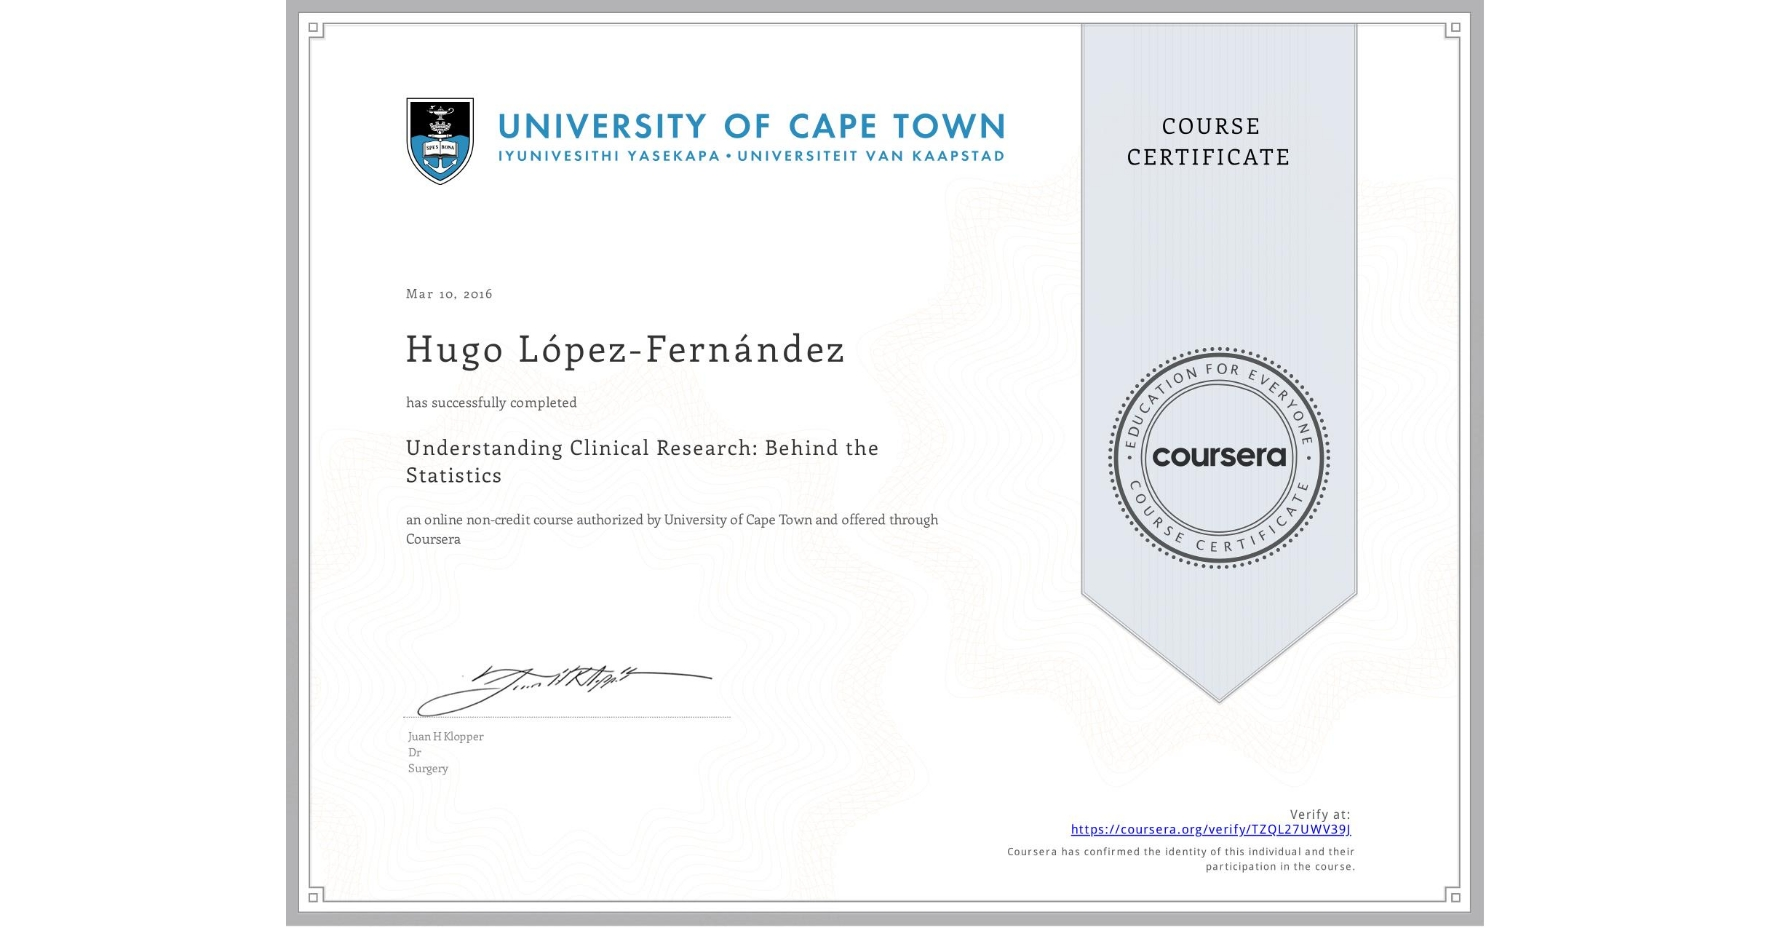 View certificate for Hugo López-Fernández, Understanding Clinical Research: Behind the Statistics, an online non-credit course authorized by University of Cape Town and offered through Coursera